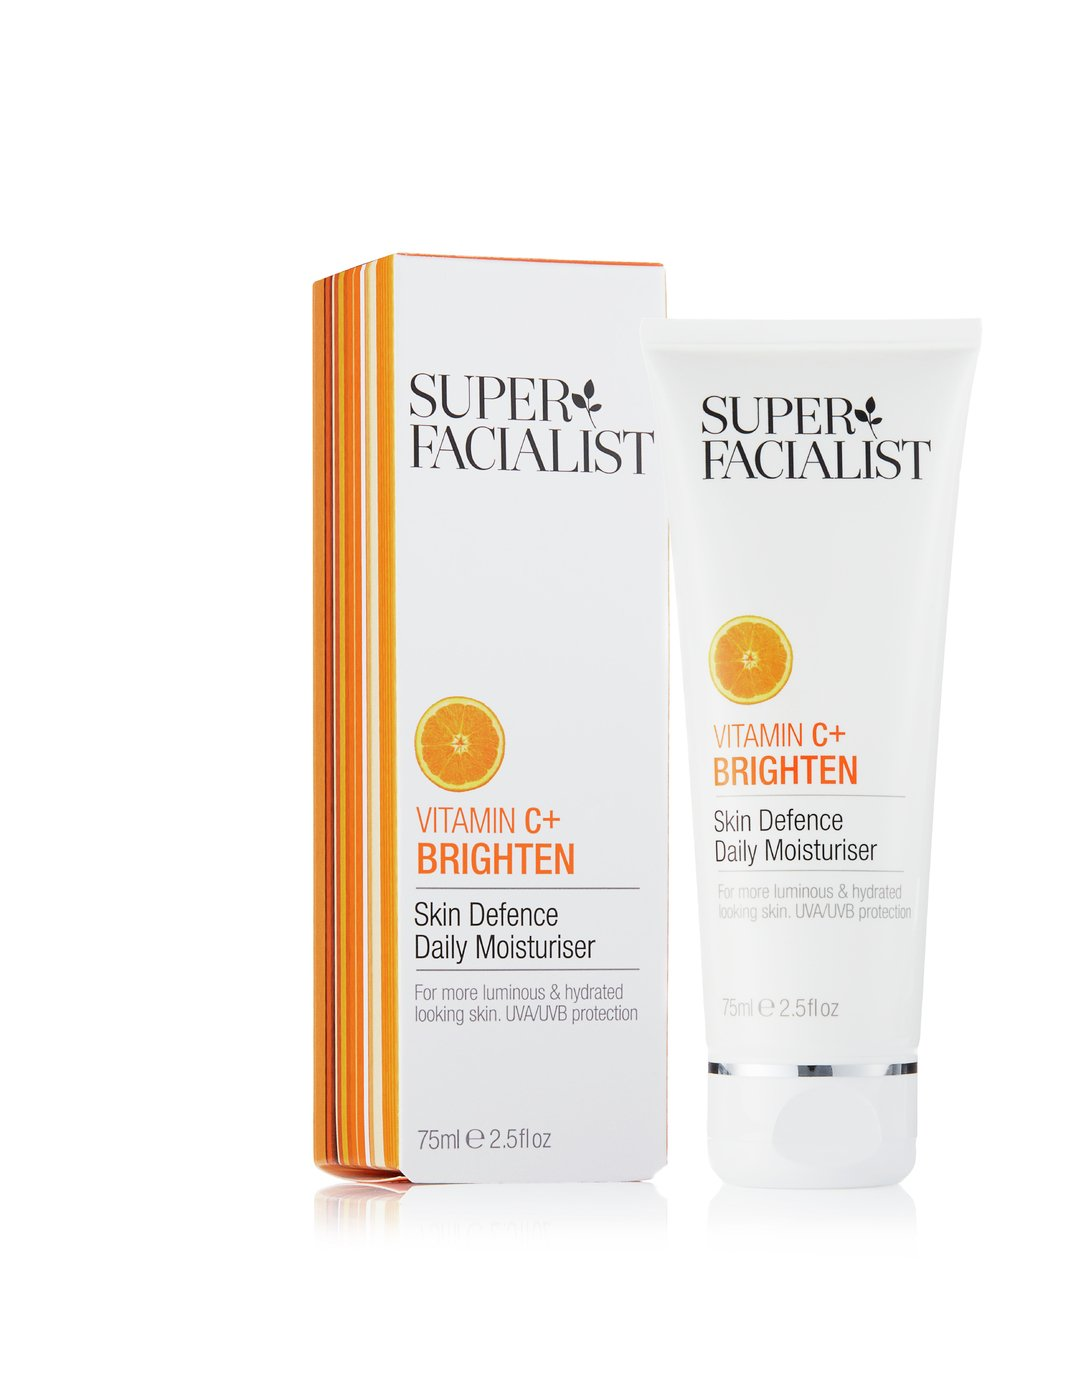 Super Facialist Vitamin C Moisturiser - 75ml